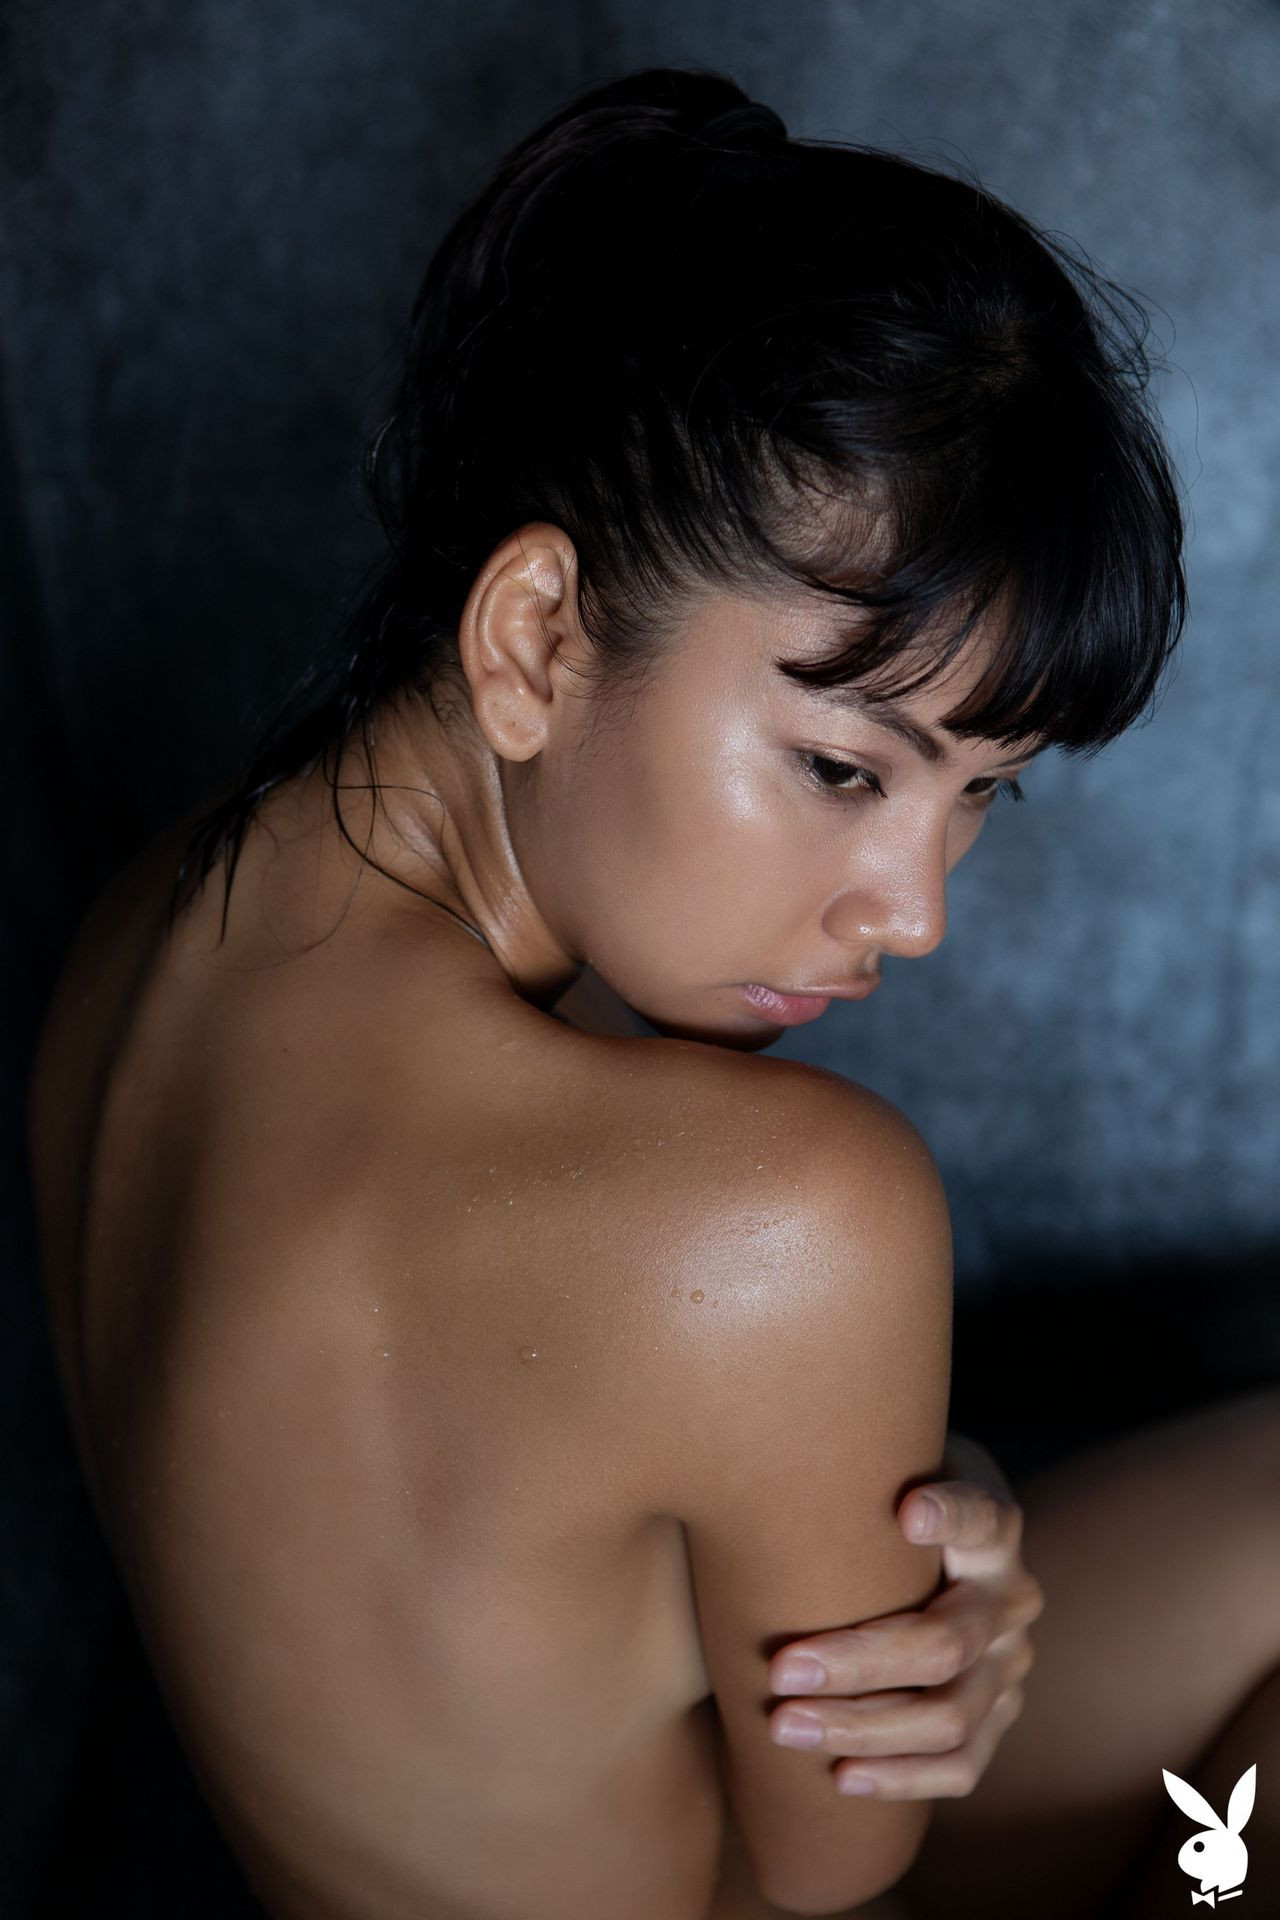 Cara Pin Nude Soft Shower thefappening.nu 15